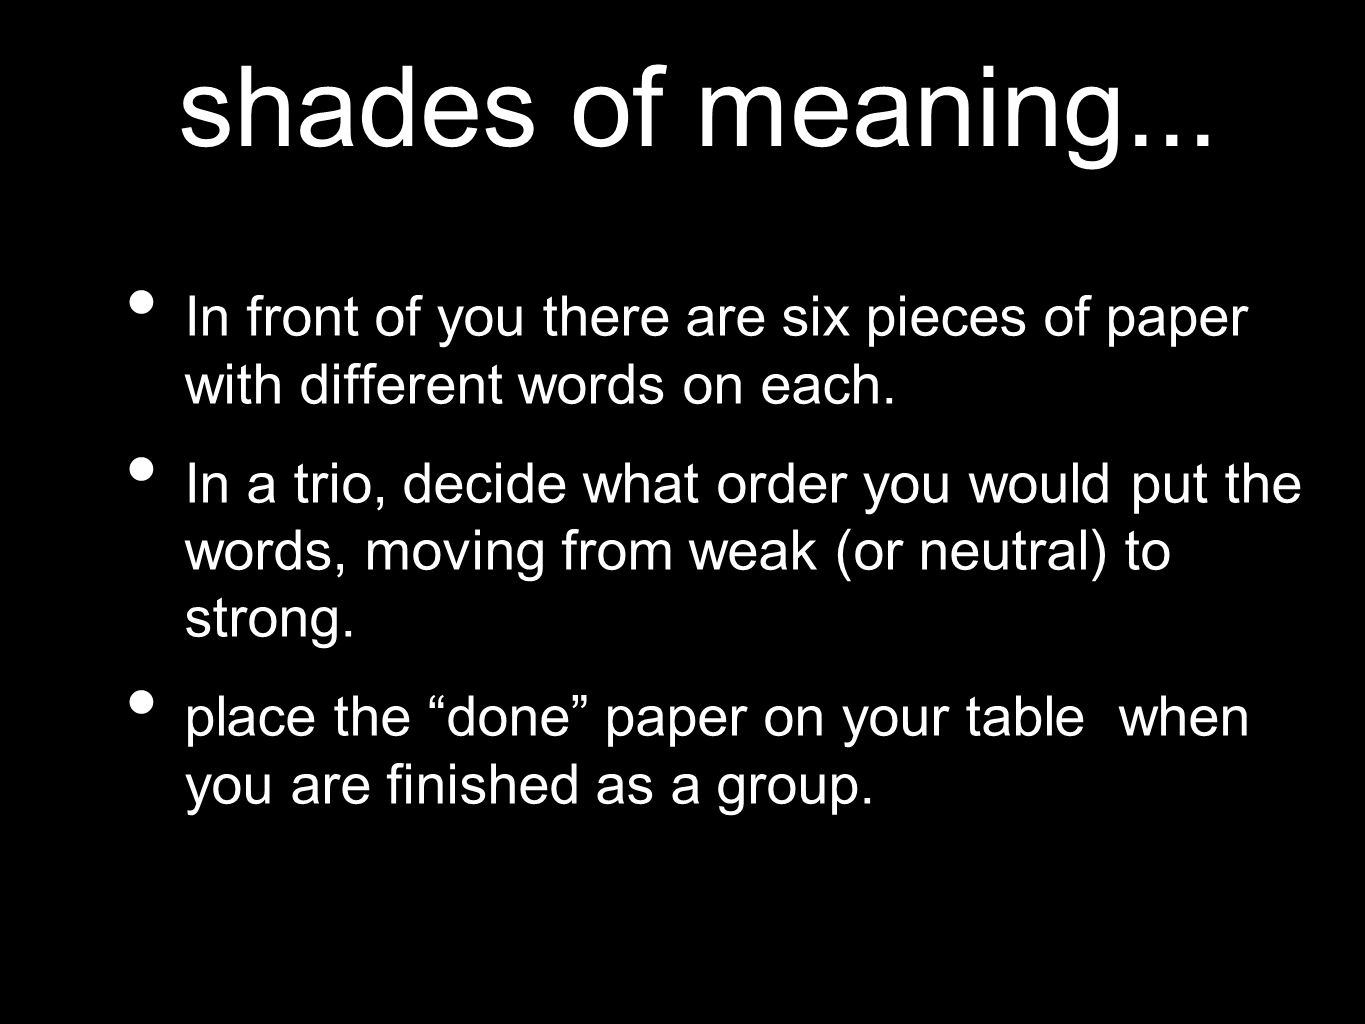 shades of meaning... In front of you there are six pieces of paper with different words on each.